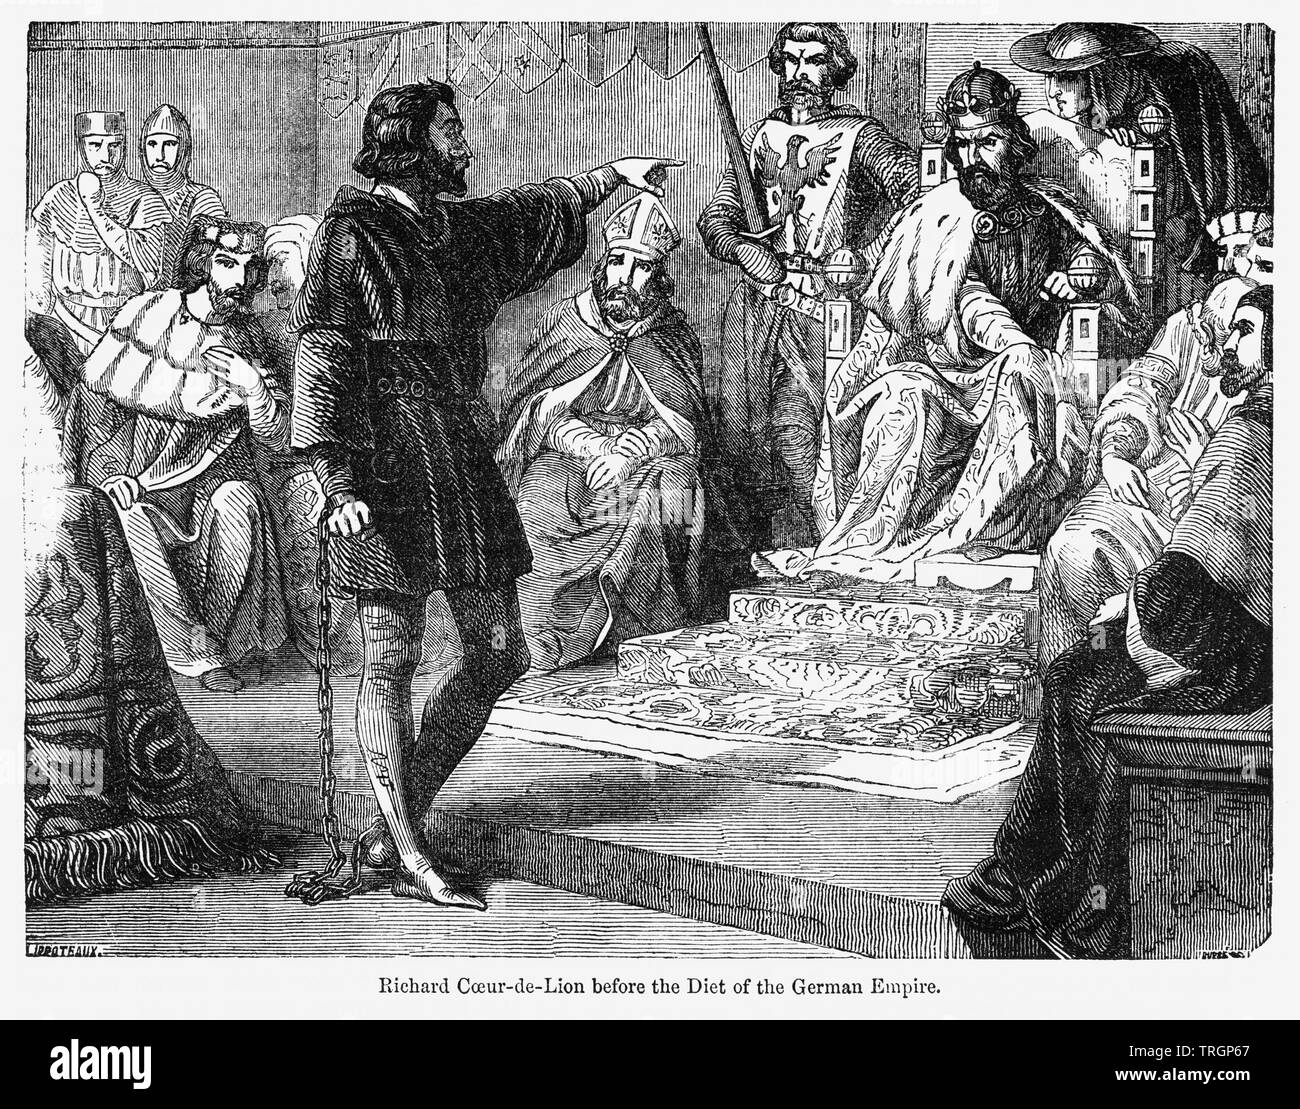 Richard Coeur de Lion before the Diet of the German Empire, Illustration from John Cassell's Illustrated History of England, Vol. I from the earliest period to the reign of Edward the Fourth, Cassell, Petter and Galpin, 1857 - Stock Image